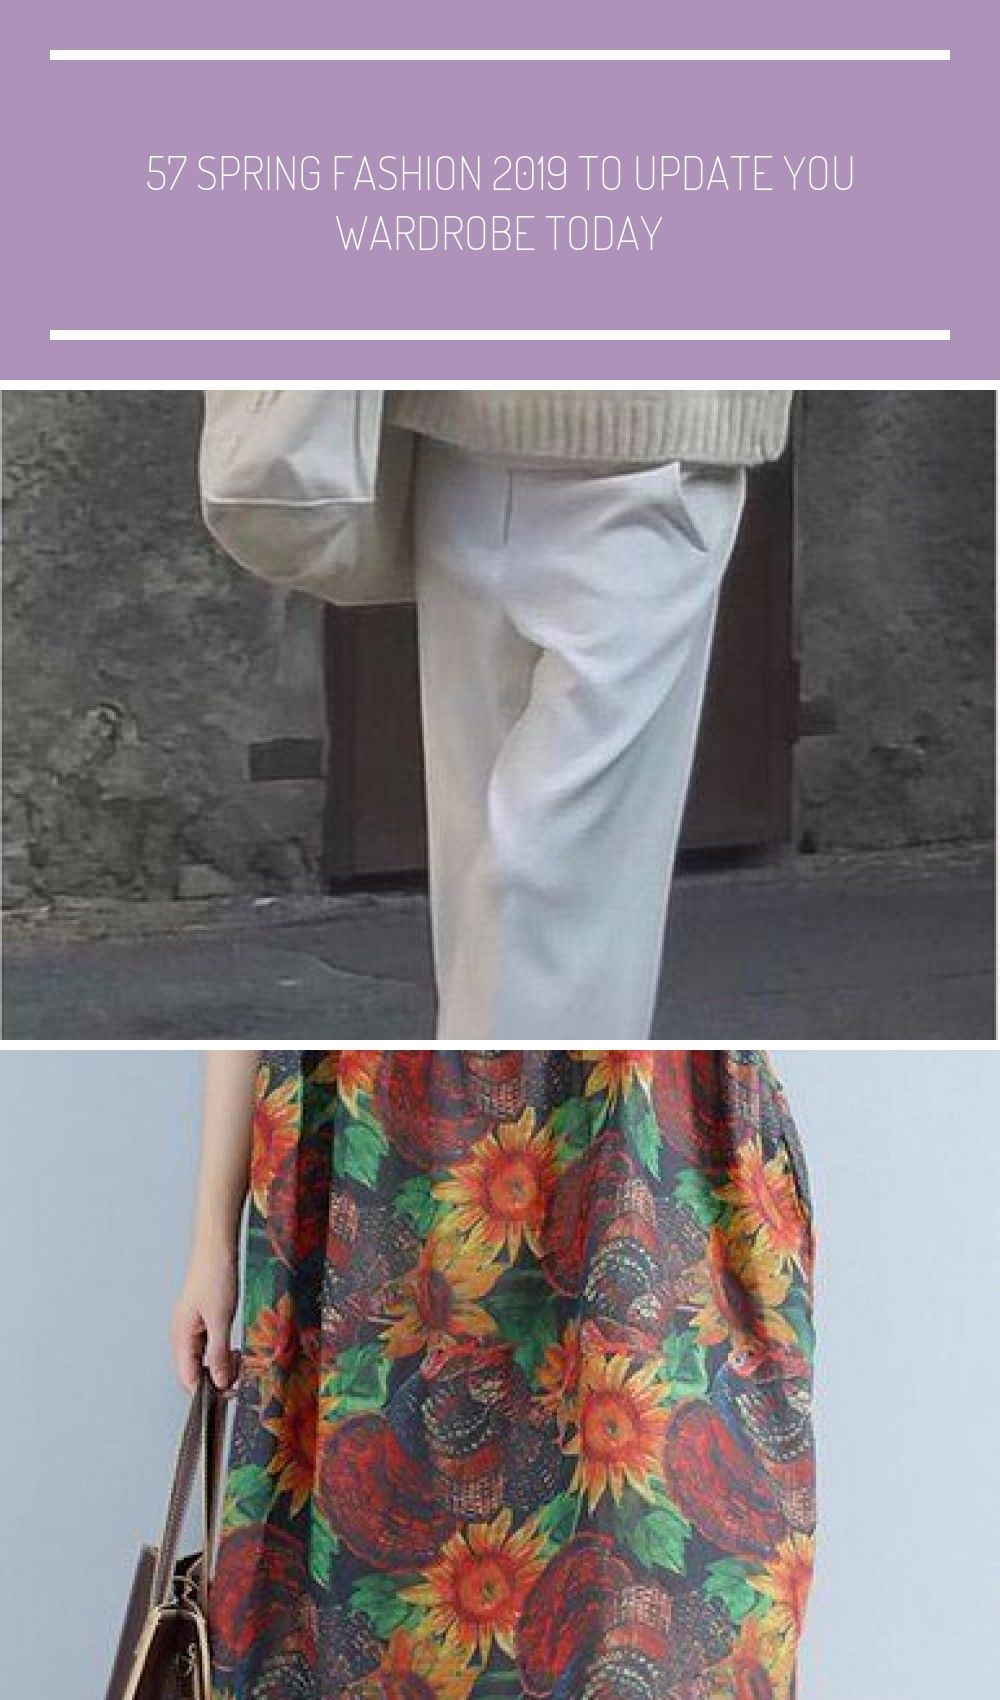 57 Spring Fashion 2019 To Update You Wardrobe Today shoes casual 57 Spring Fashion 2019 To Update You Wardrobe Today